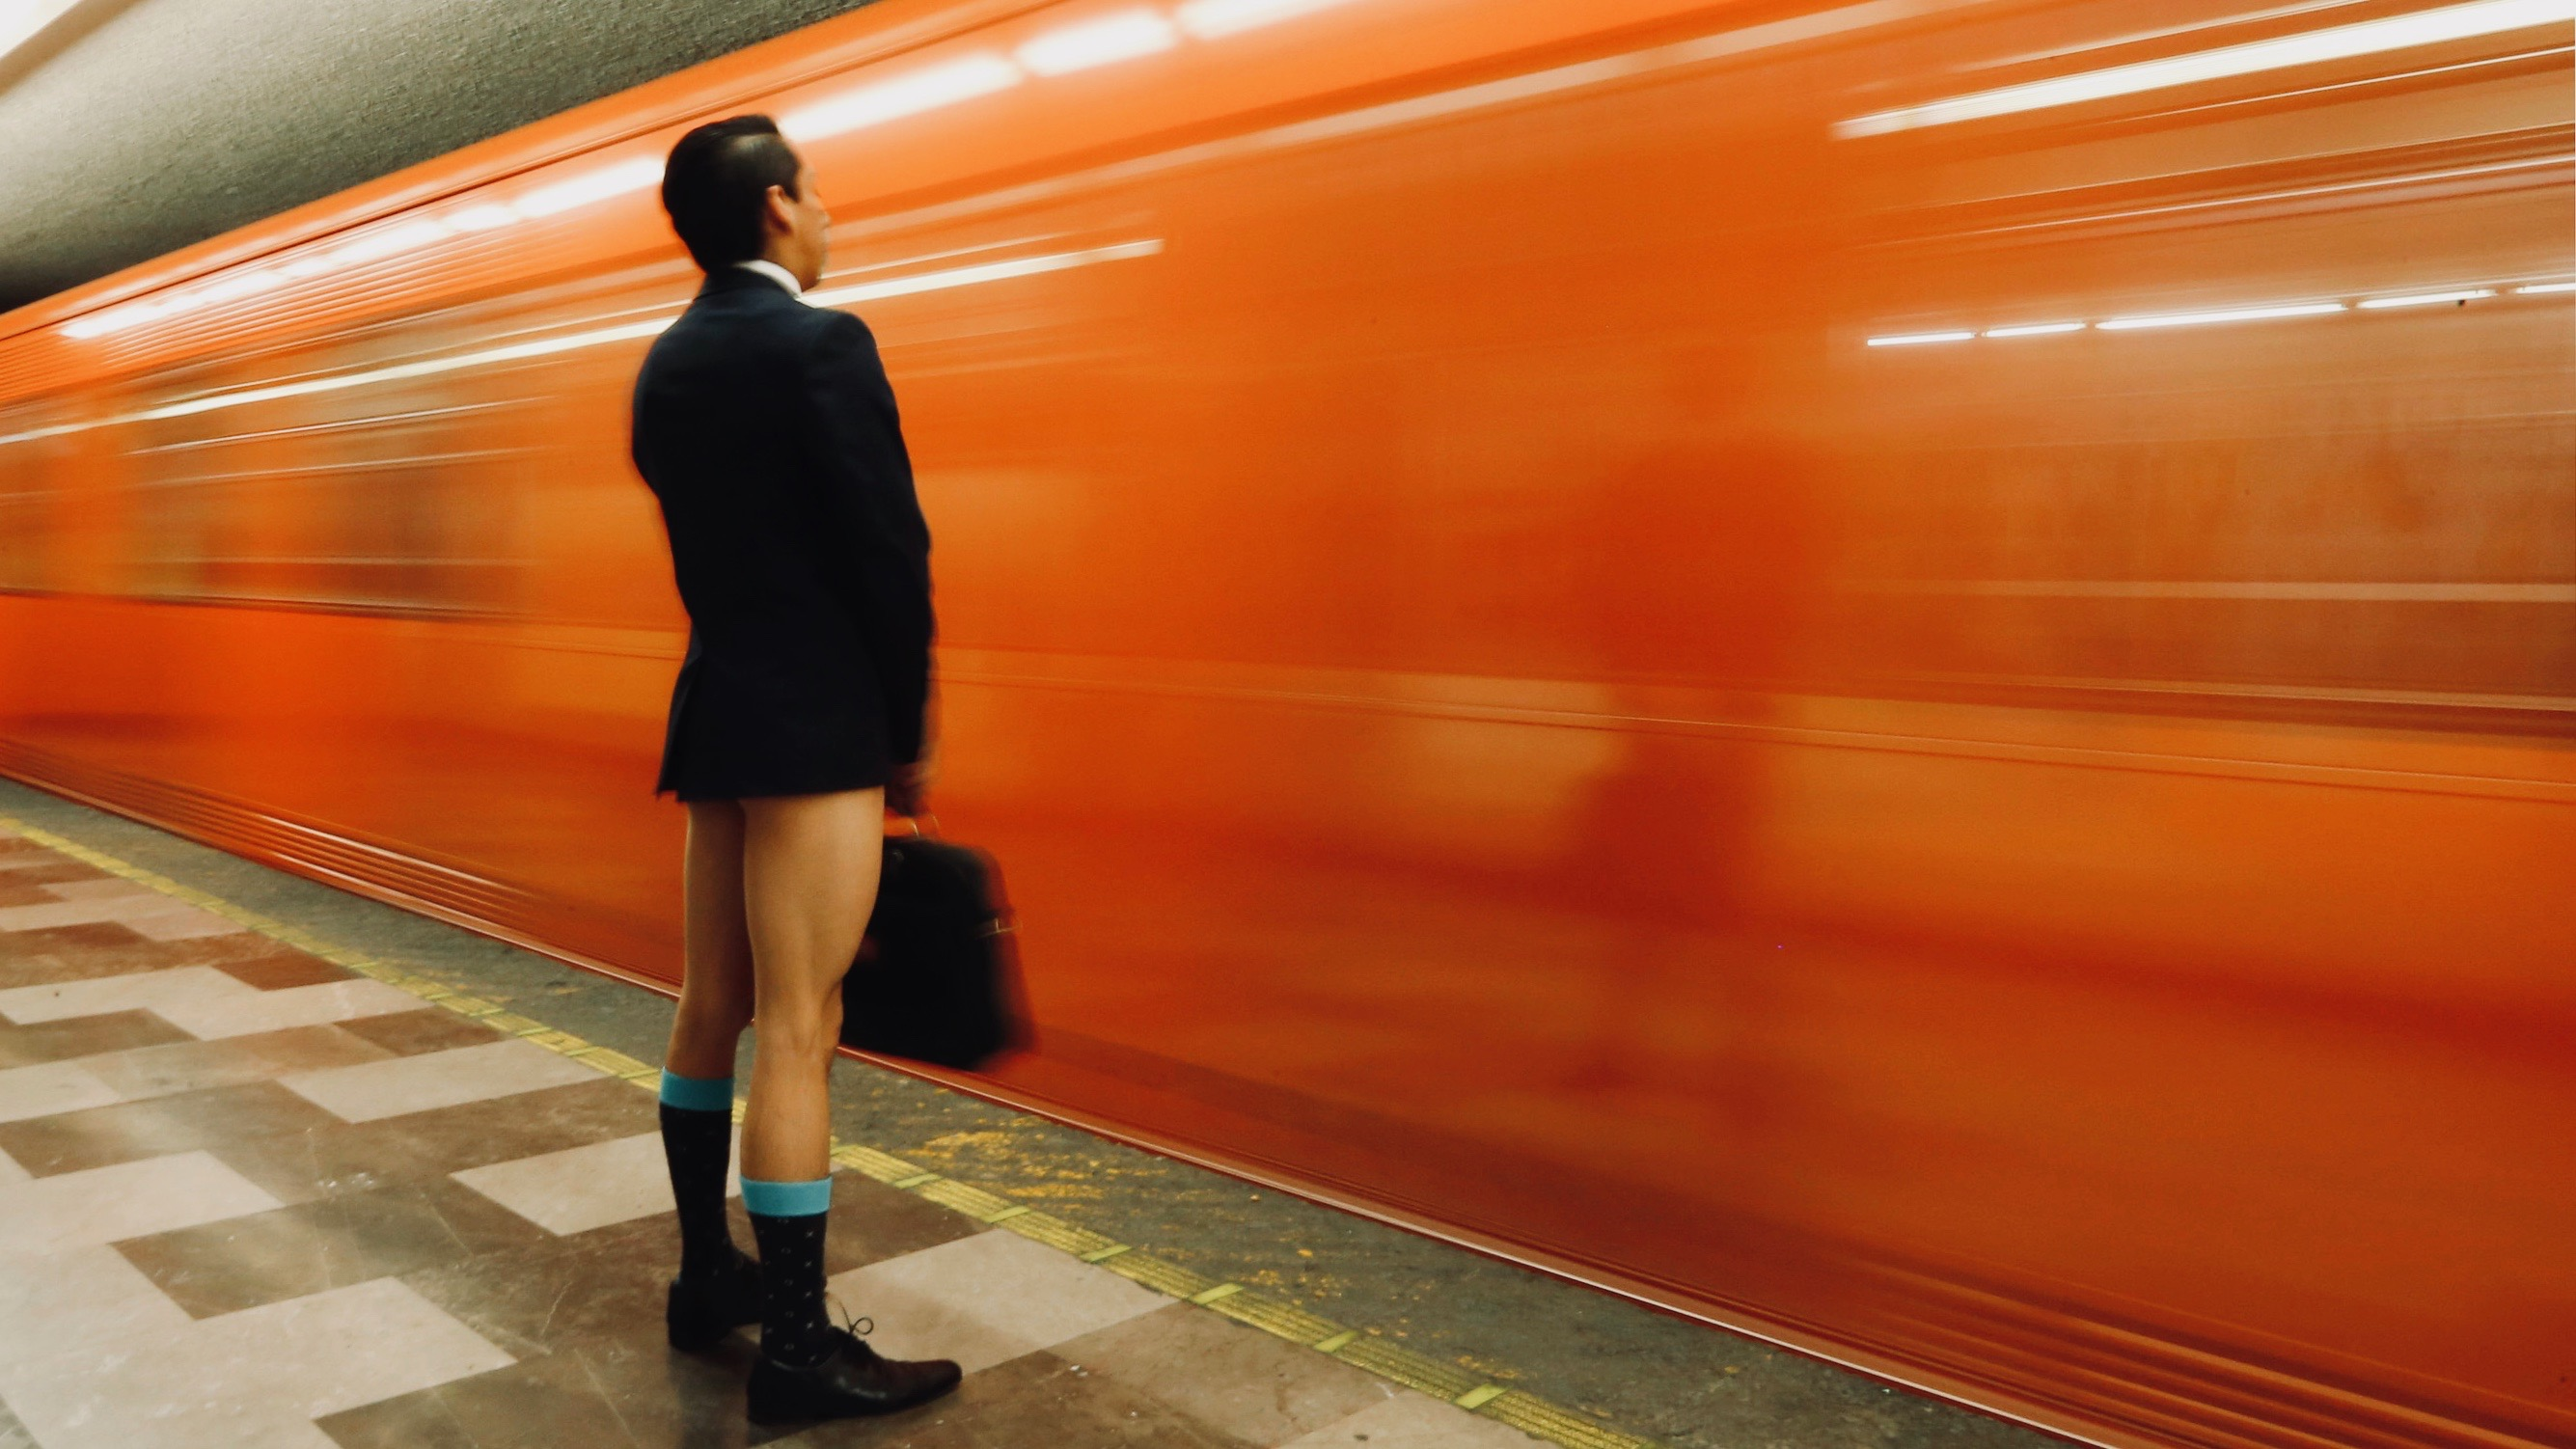 Man without pants waits for subway.